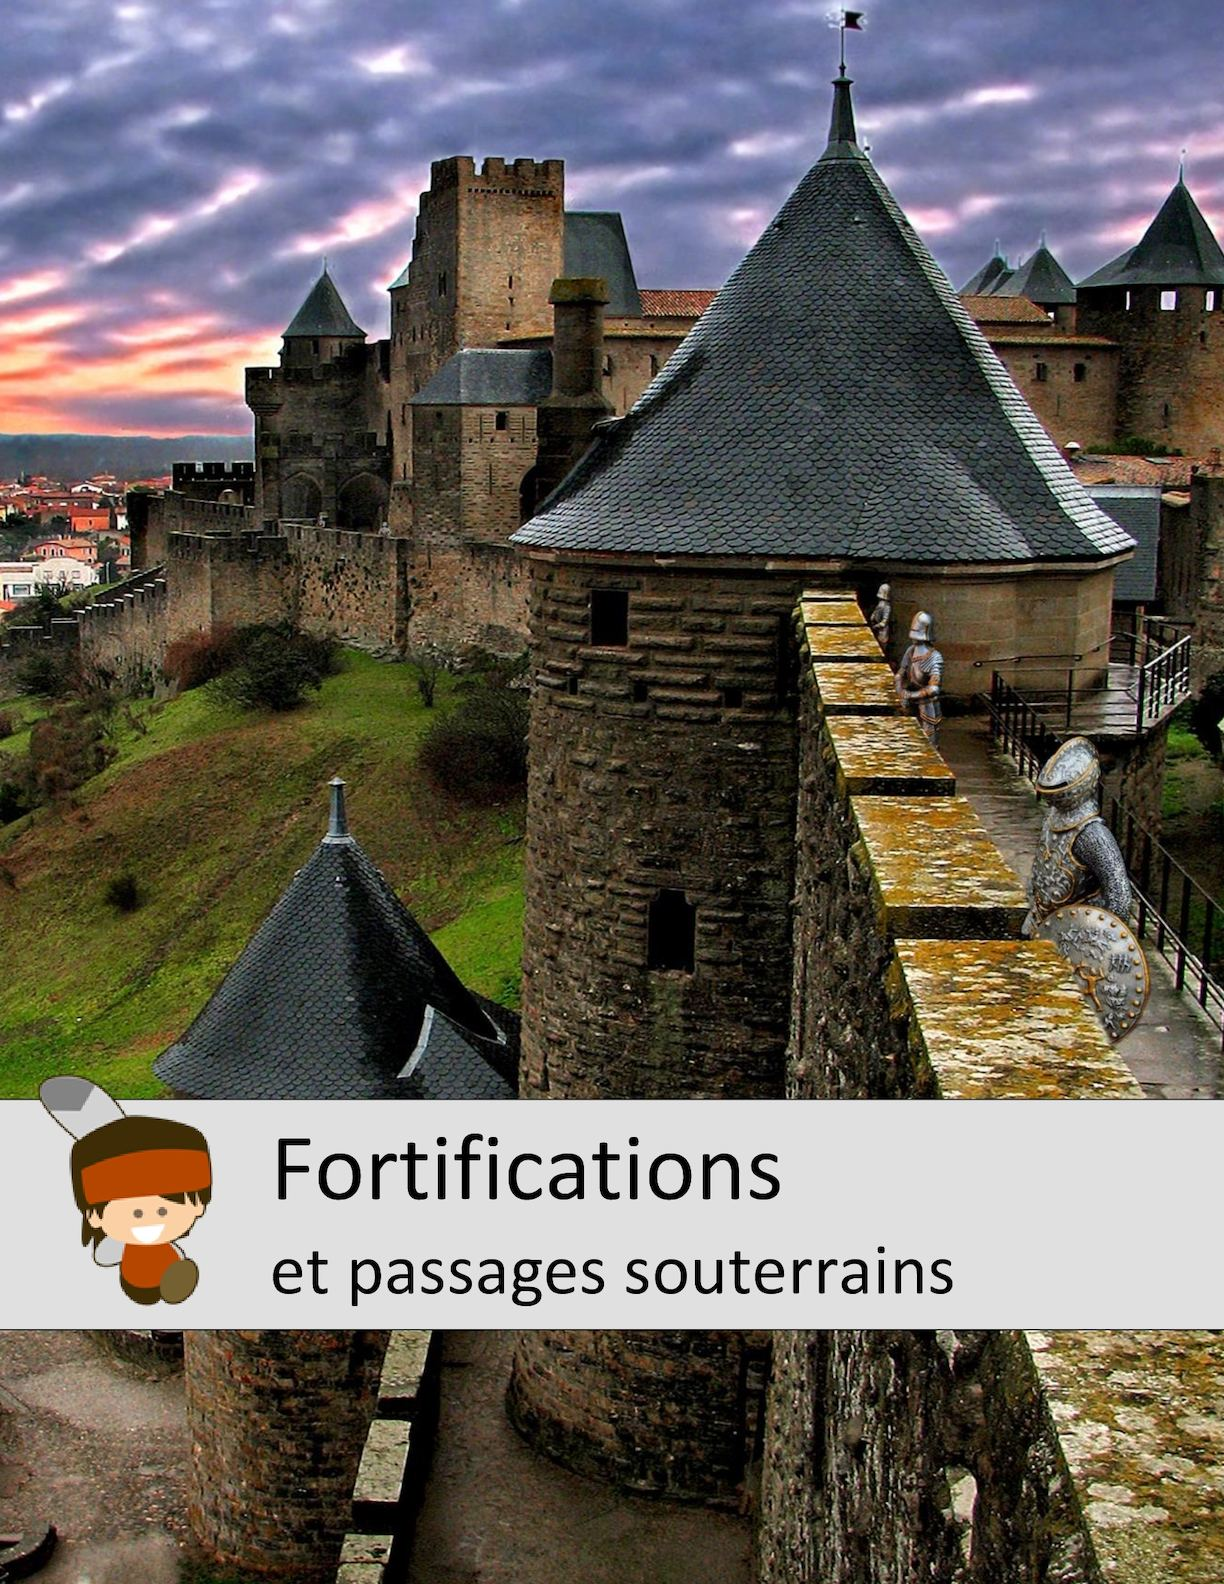 Fortifications et passages souterrains